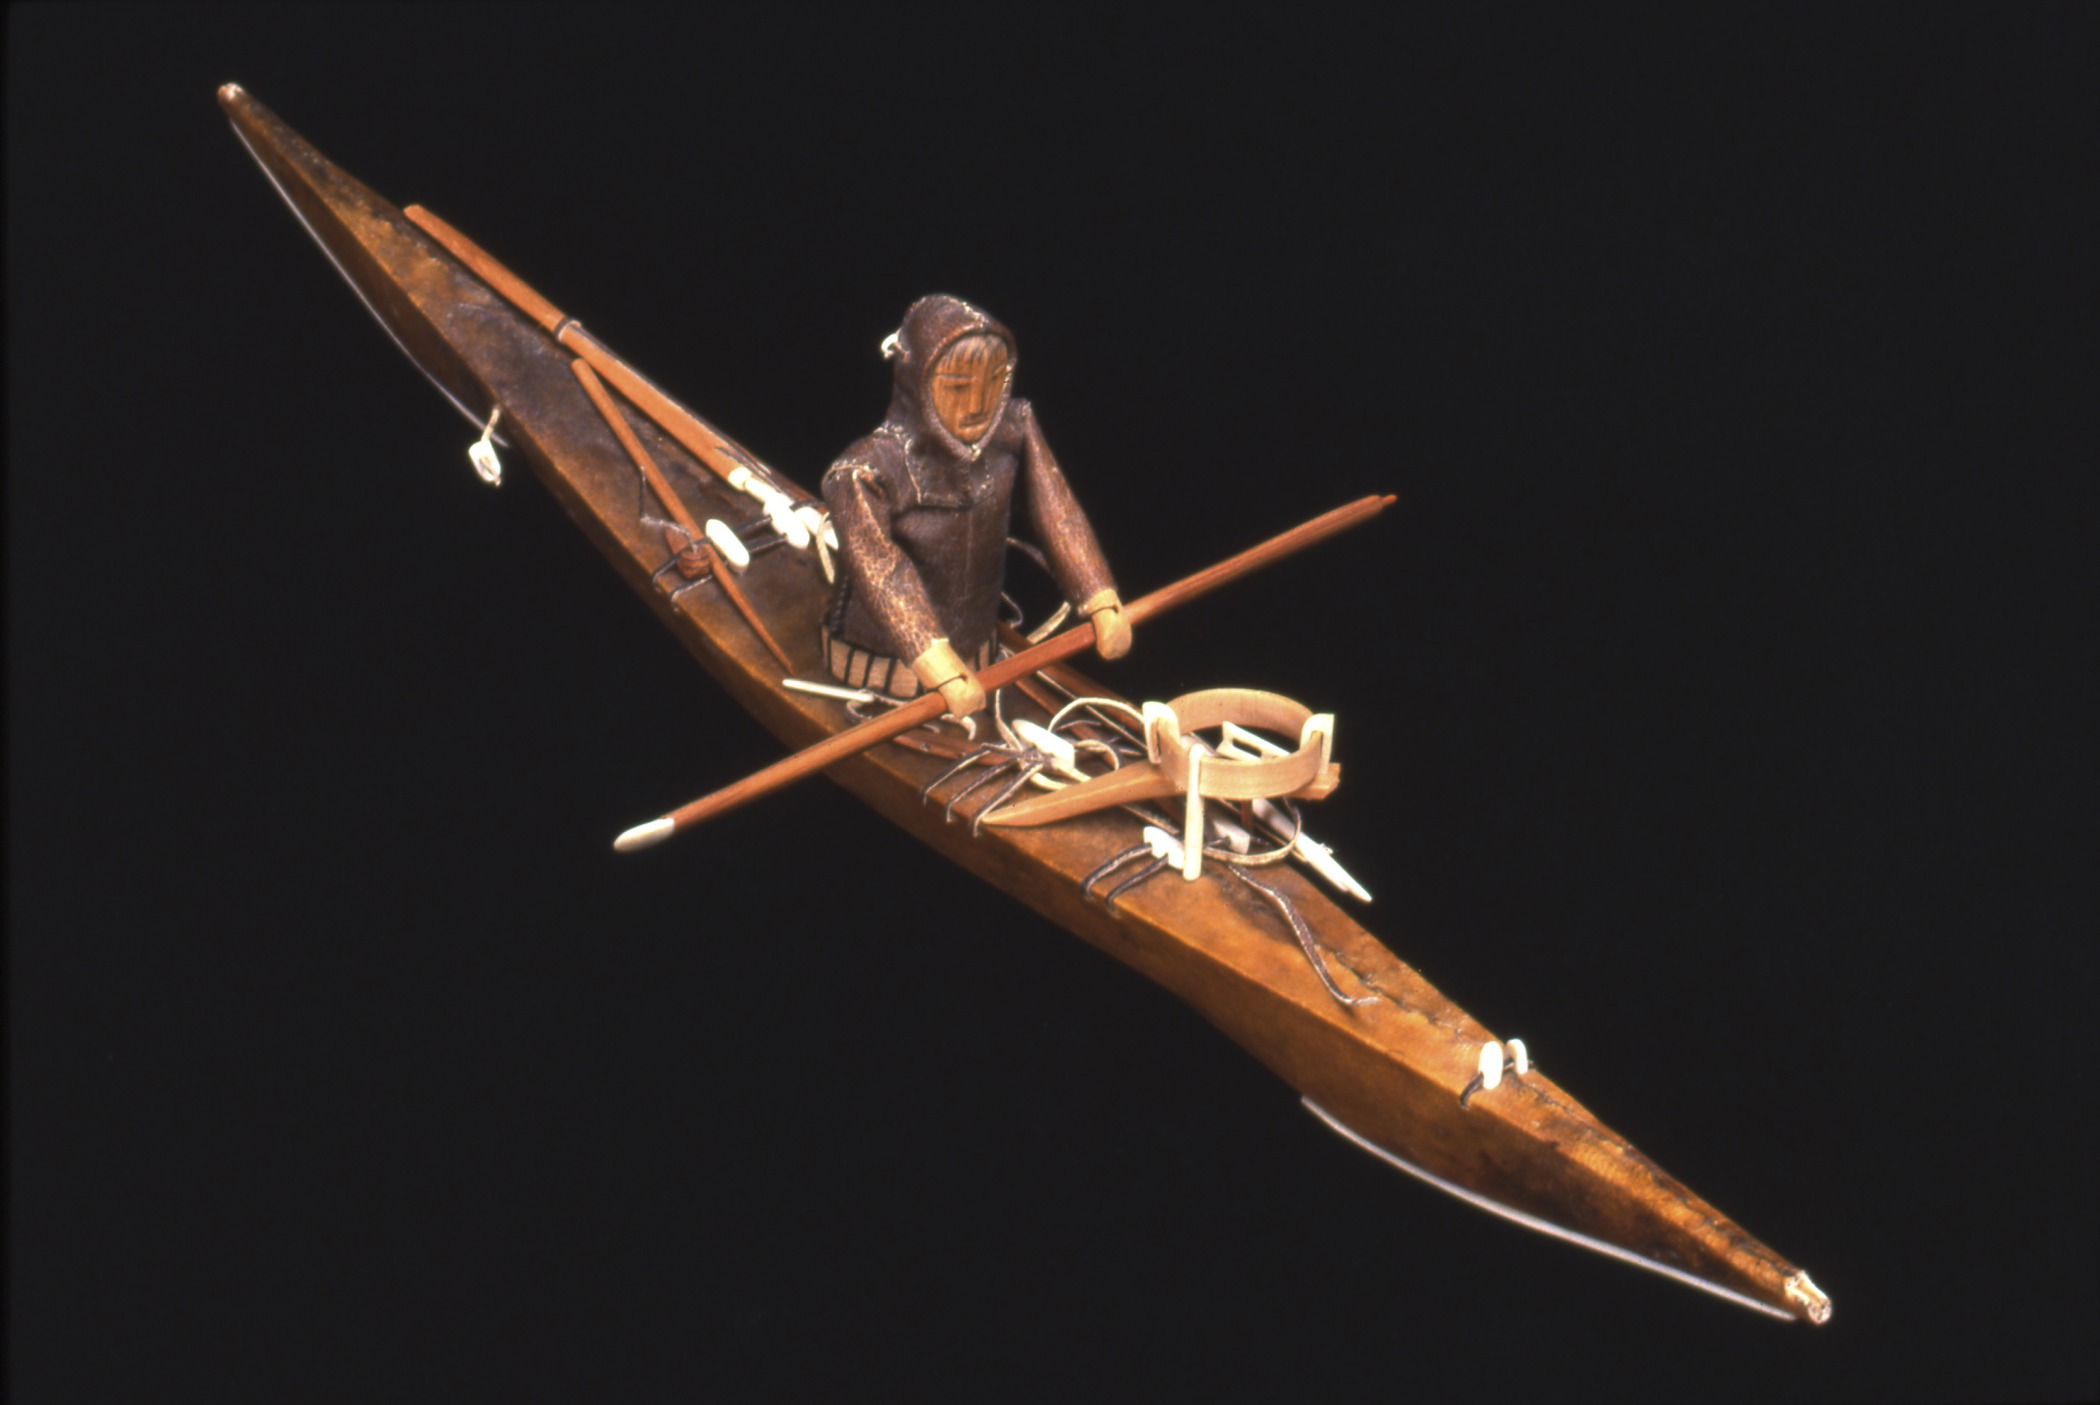 Kalaallit (West Greenlandic Inuit), souvenir model kayak with paddler and seal-hunting equipment, collected 1935–40. Skin, wood, and ivory, length: 16 15/16 in. Hood Museum of Art, Dartmouth College: Gift of David C. Nutt, Class of 1941; 159.9.14390.